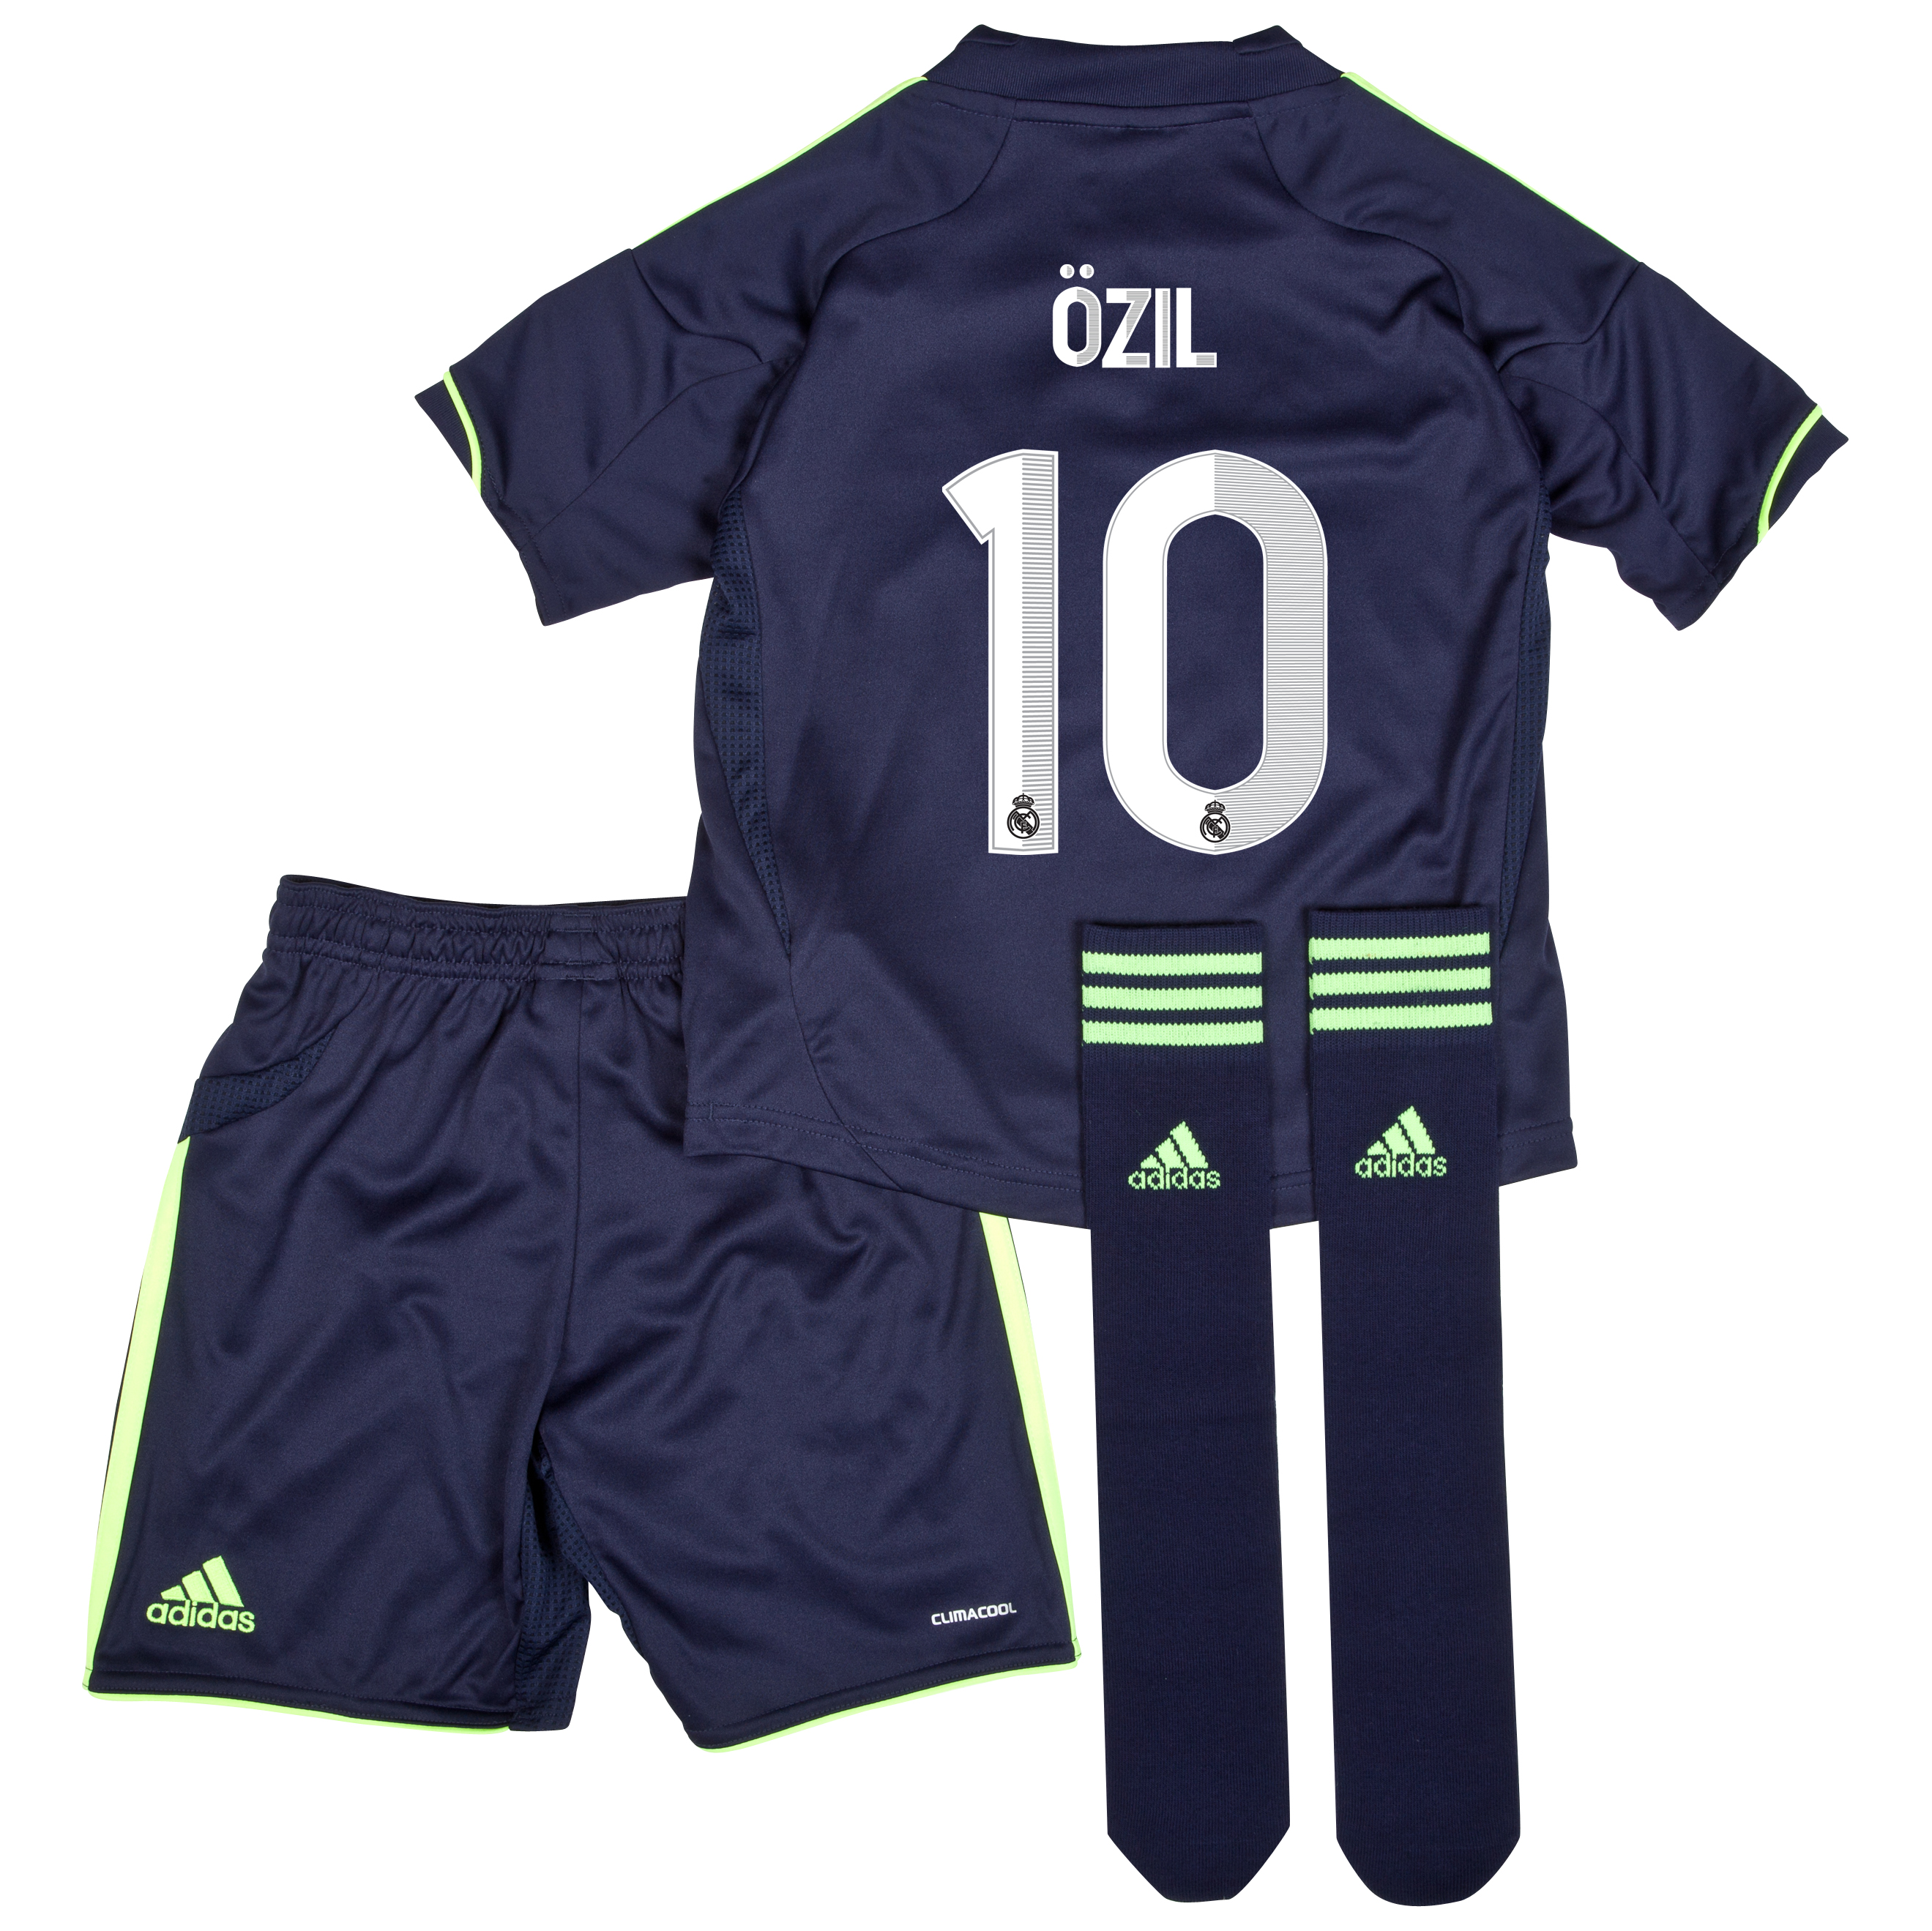 Mini kit visitante Real Madrid 2012/13 con impresión 10 Özil